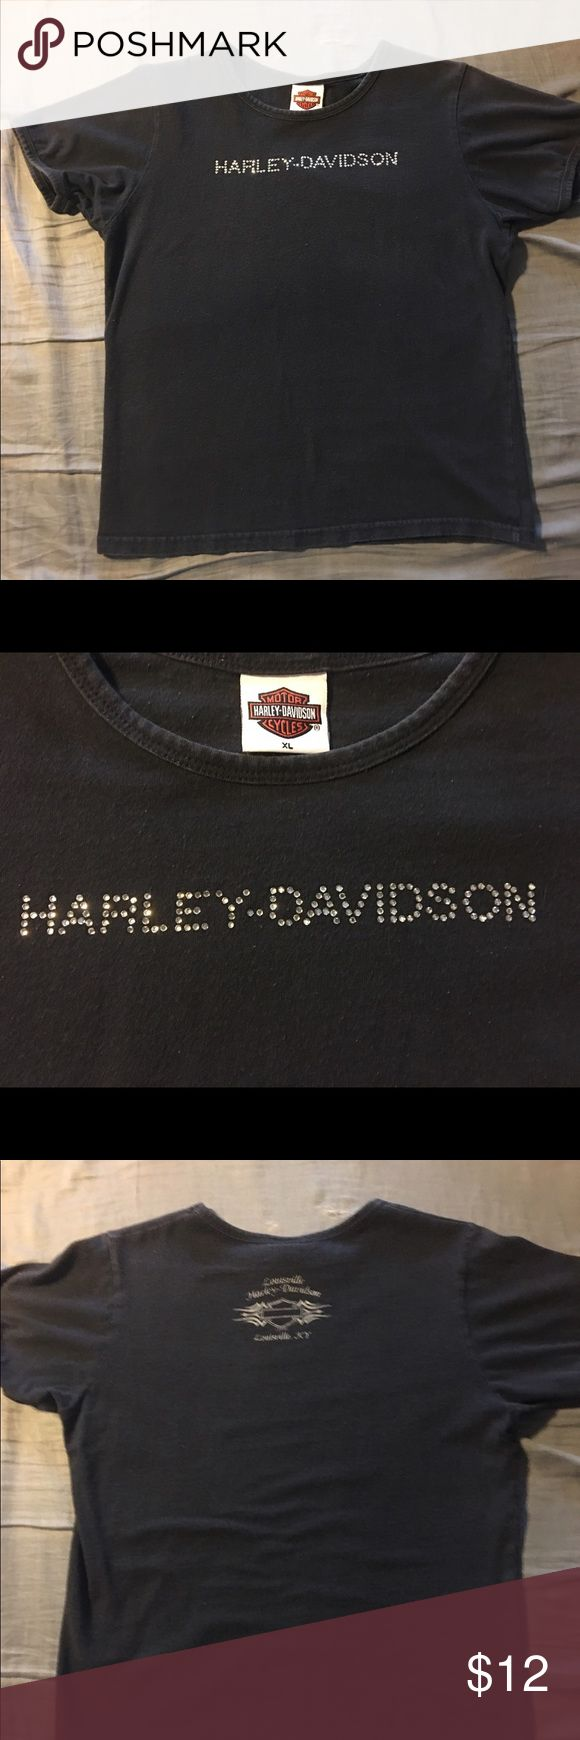 Design your own t shirt louisville ky - Harley Davidson Shirt Sz Xl Harley Davidson T Shirt From Louisville Hd Louisville